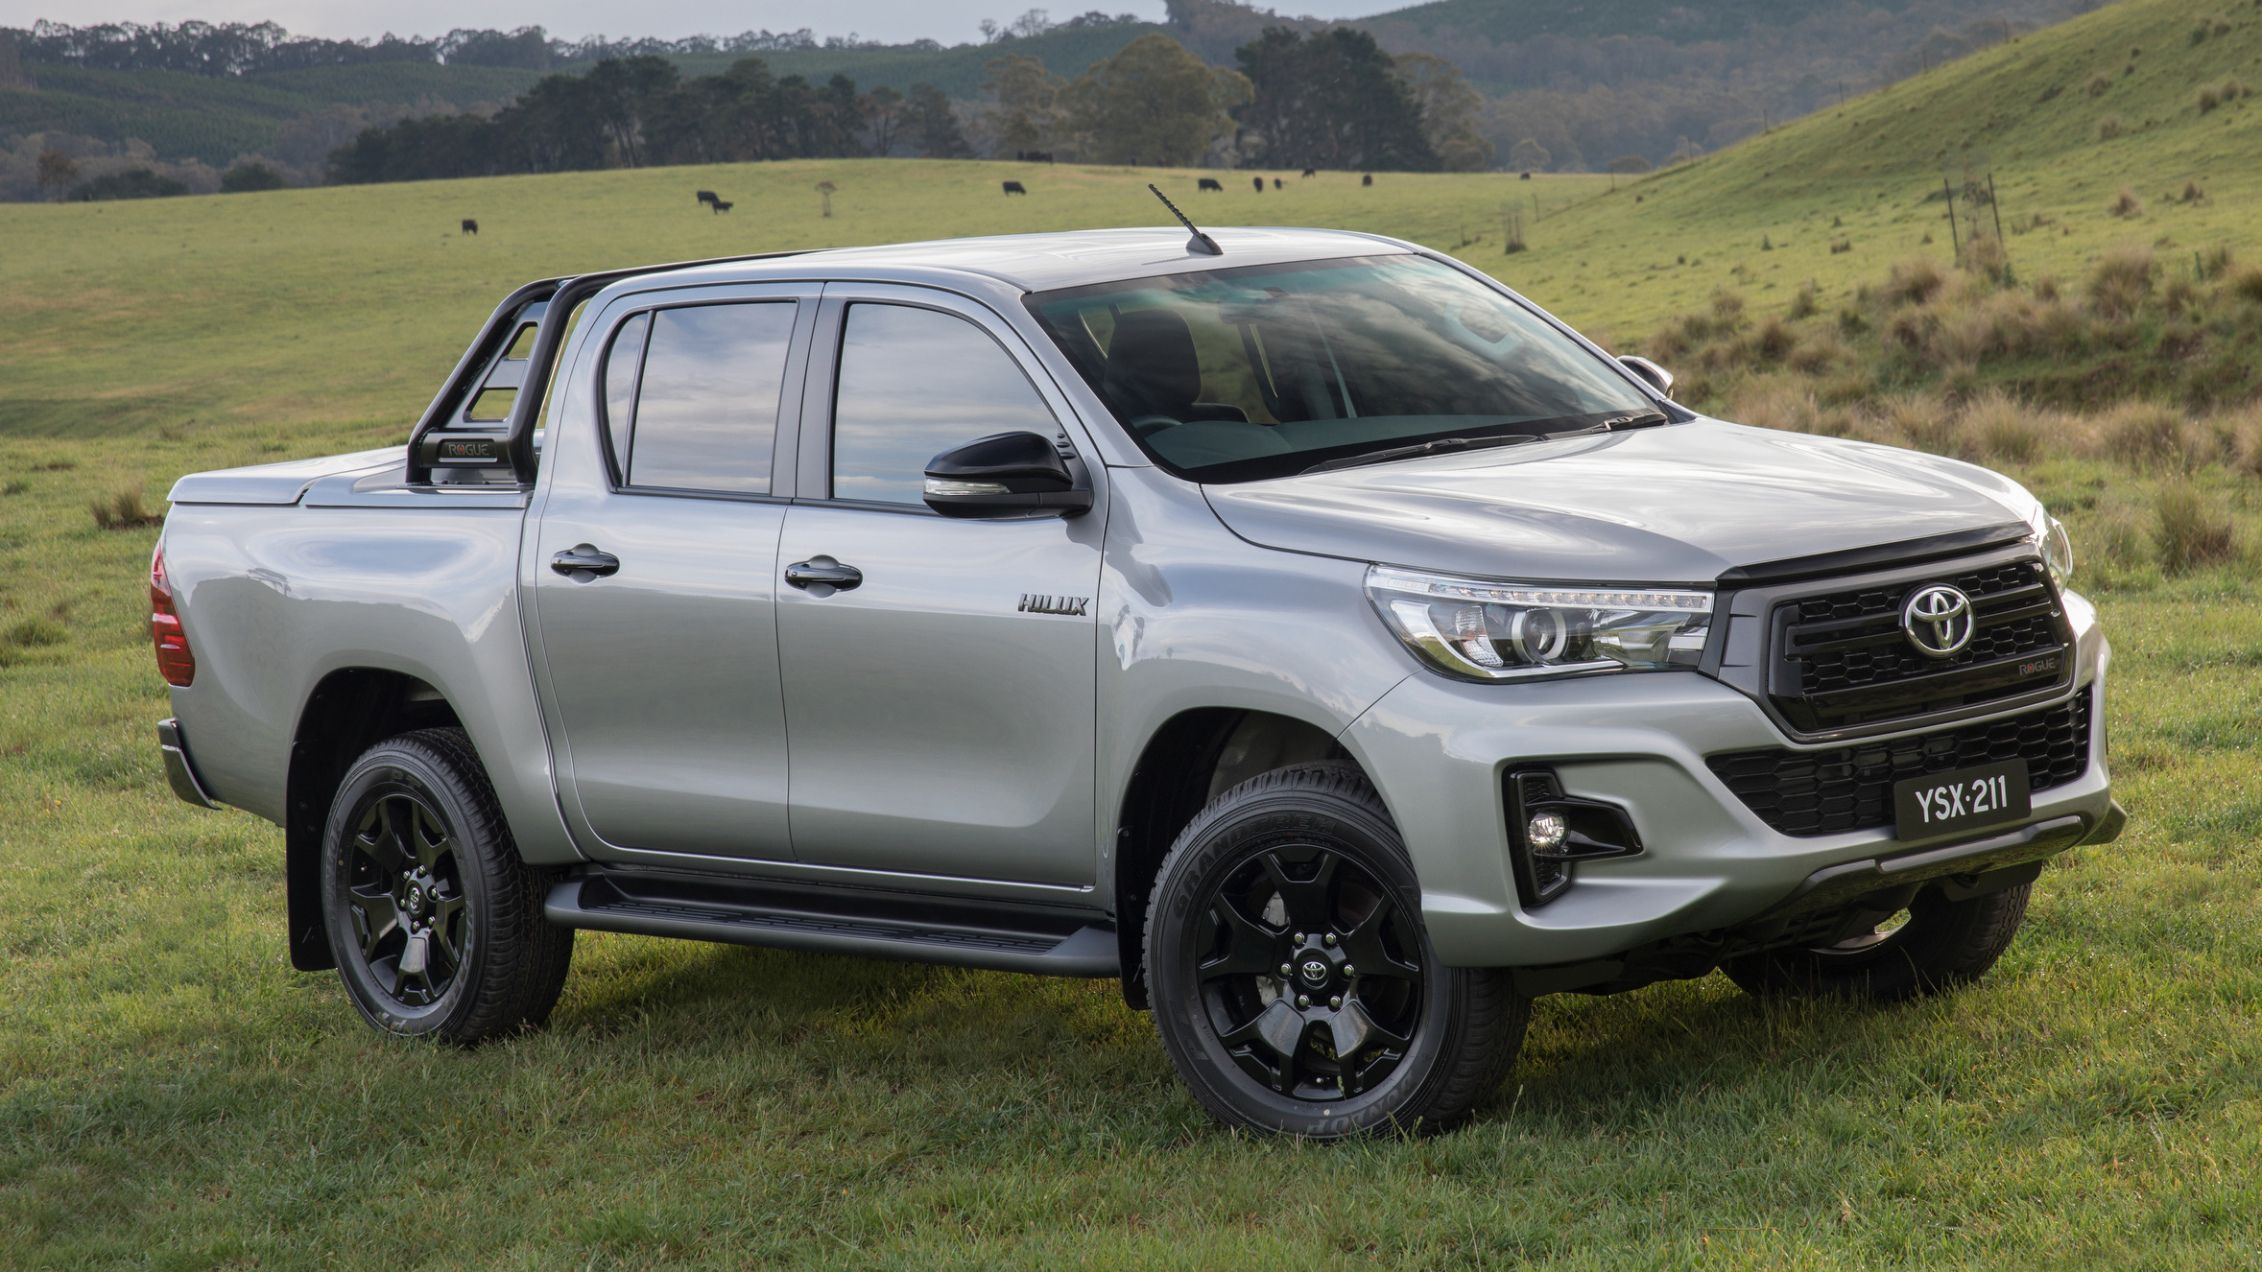 Quiz How Much Do You Know About Toyota Hilux Usa Toyota Hilux Toyota Toyota Land Cruiser Prado